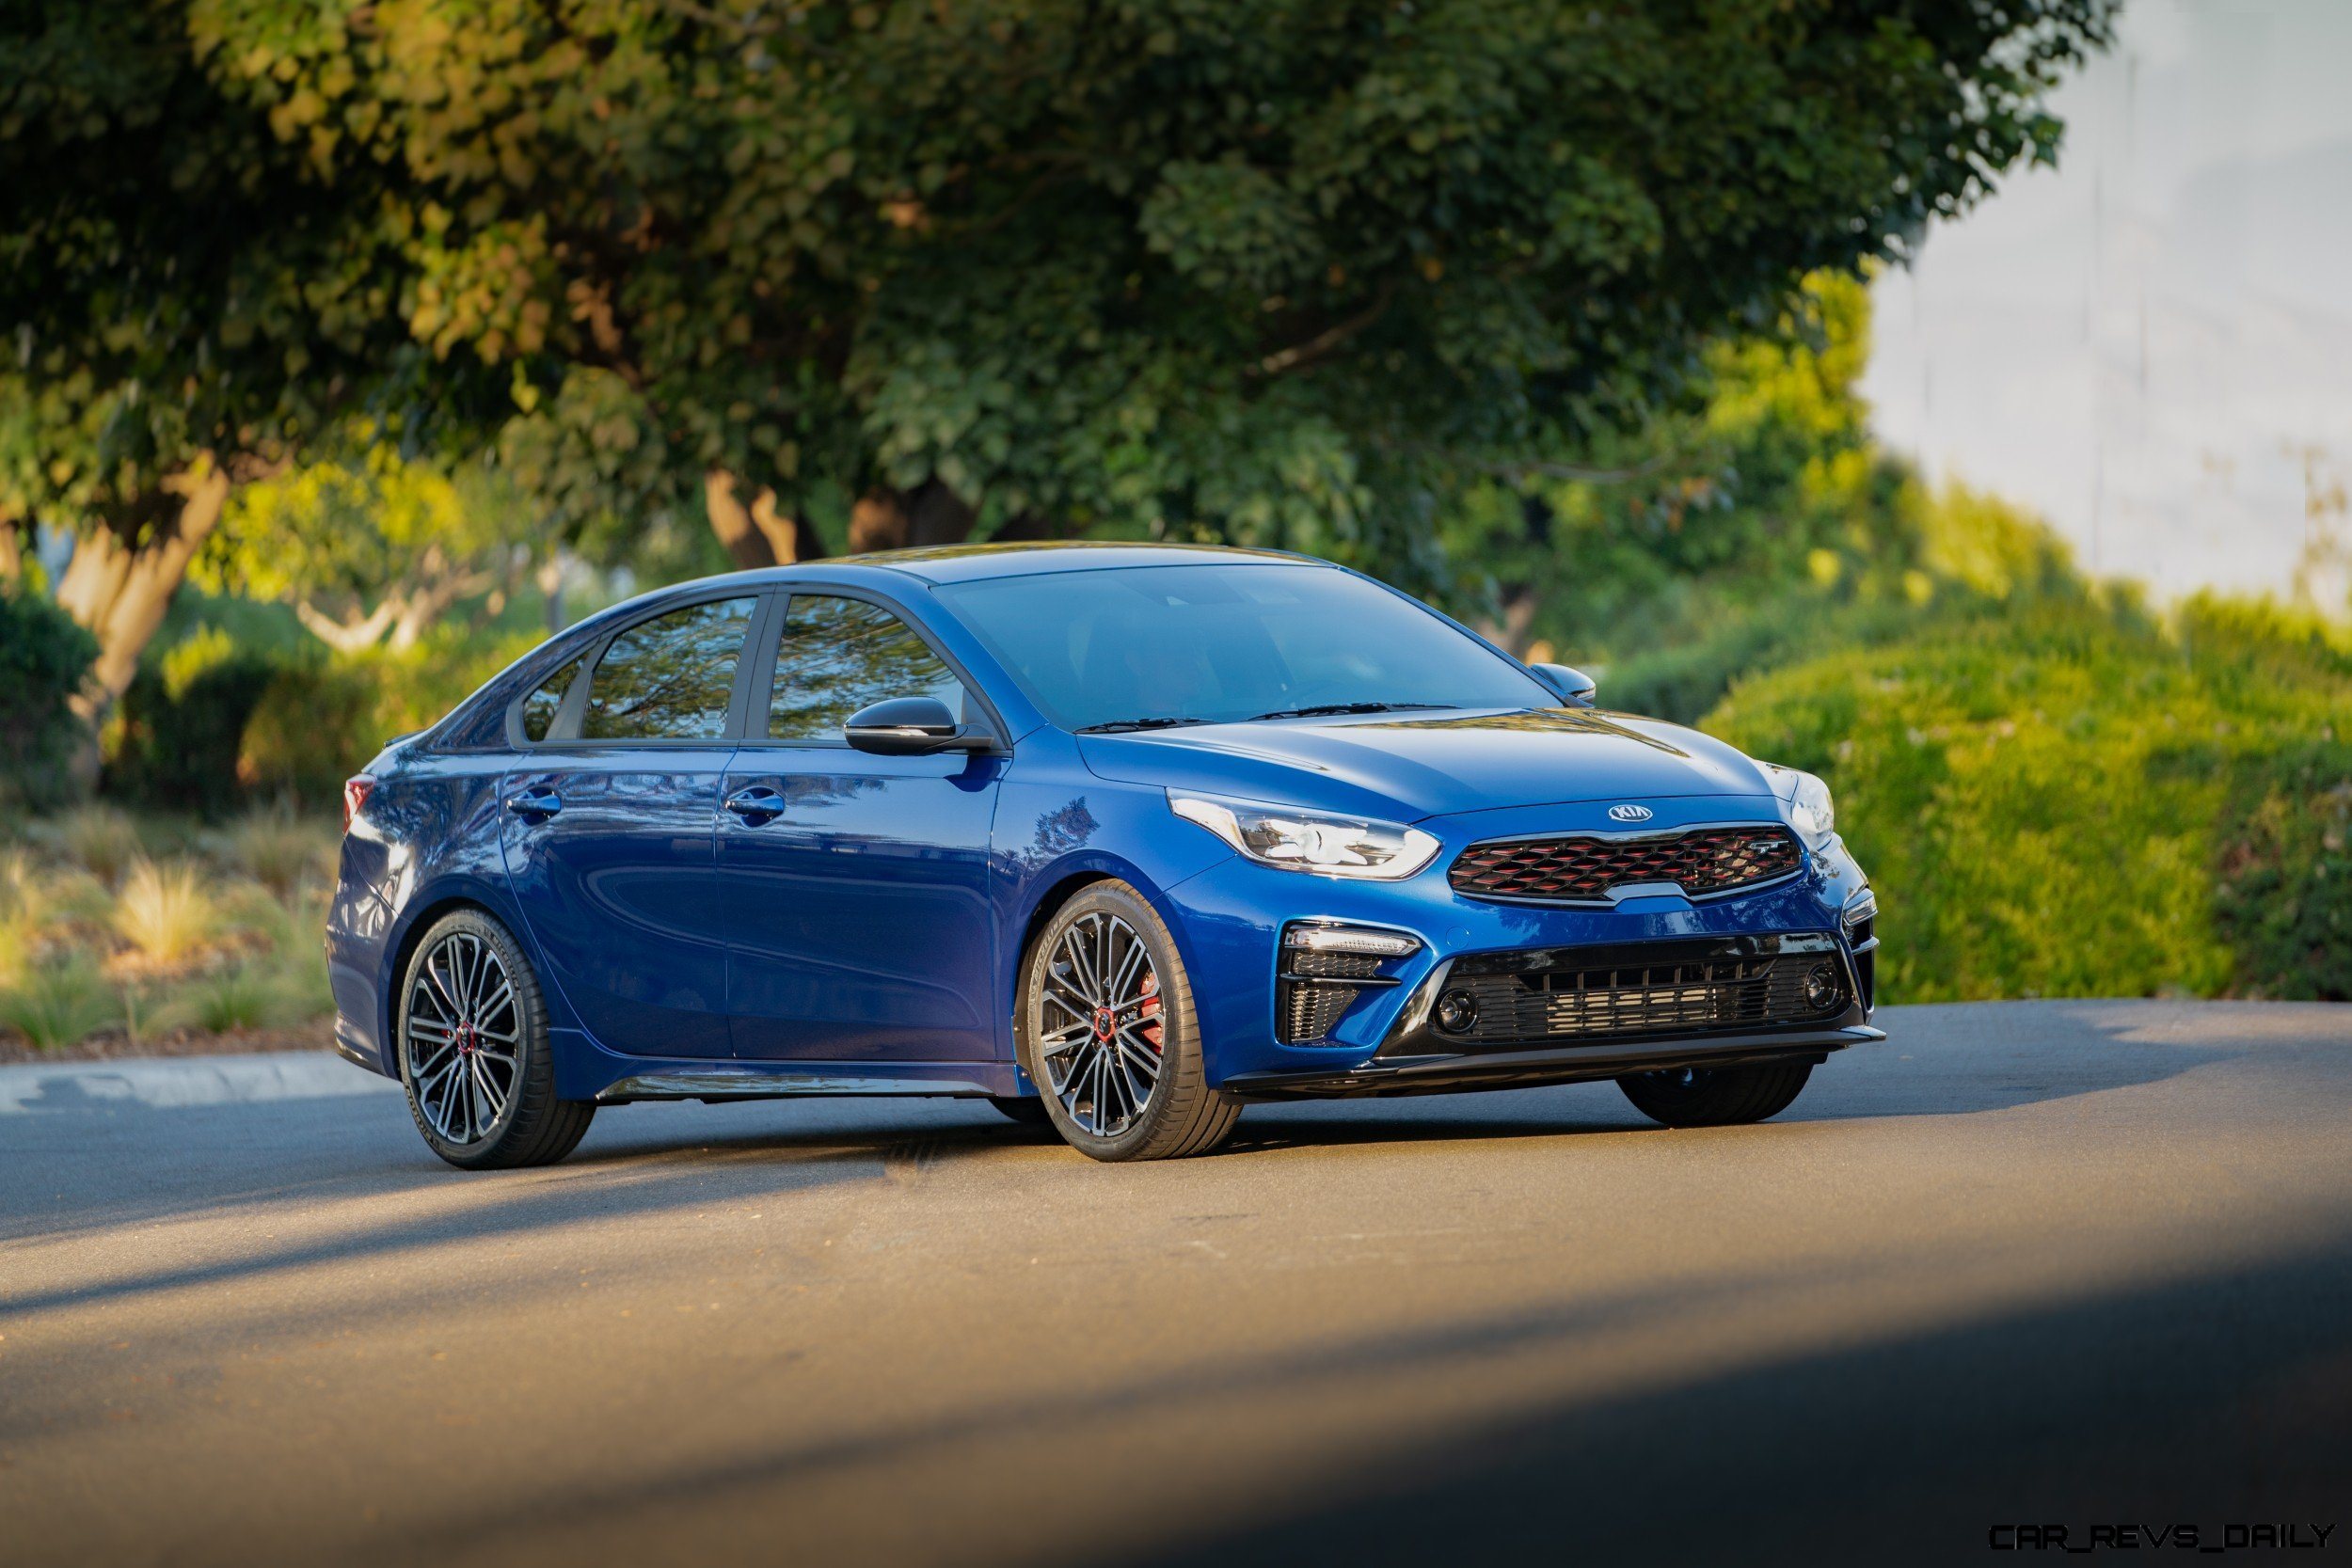 Kia Unveils 201 Horsepower 2020 Forte Gt, At Last Our - 2022 Kia Forte Engine 2.0 L 4 Cylinder Cargo Space, Rumor